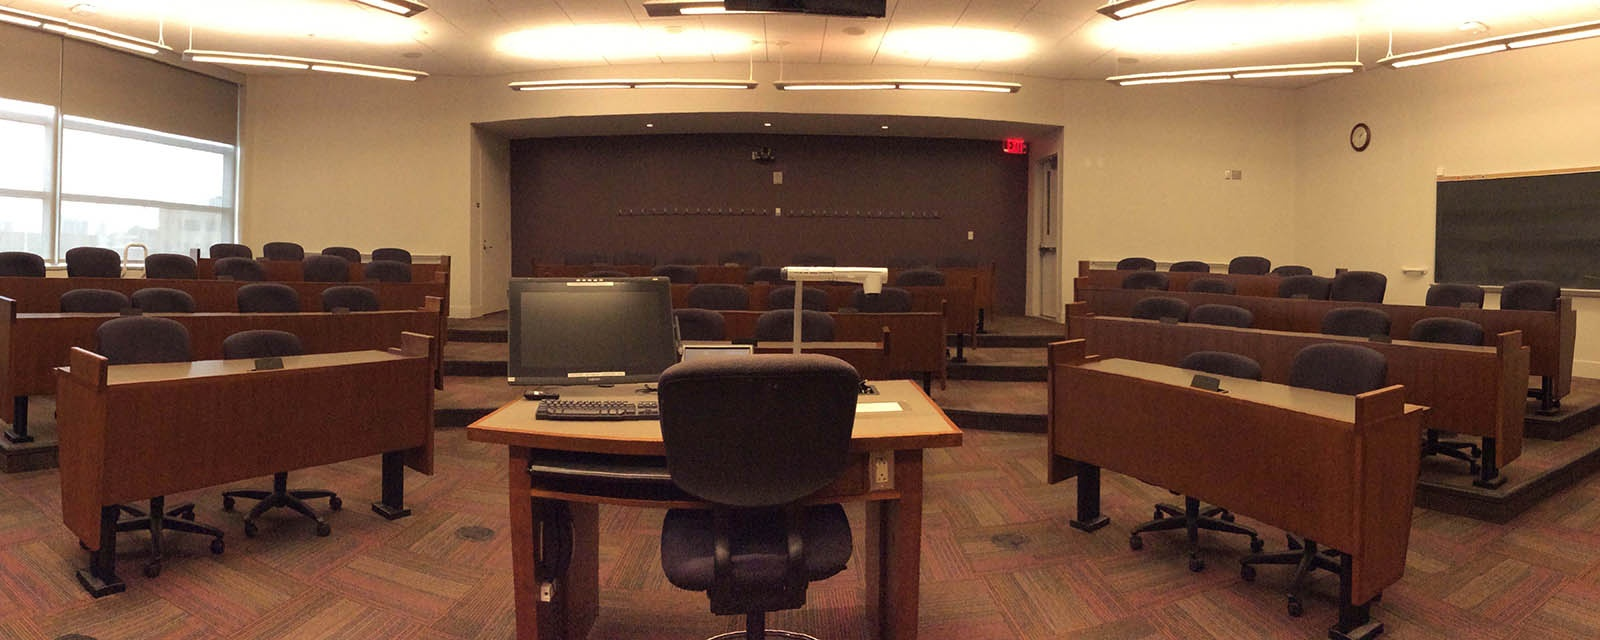 Panorama SOM 201 from front of room, stadium seating, teaching station in front center